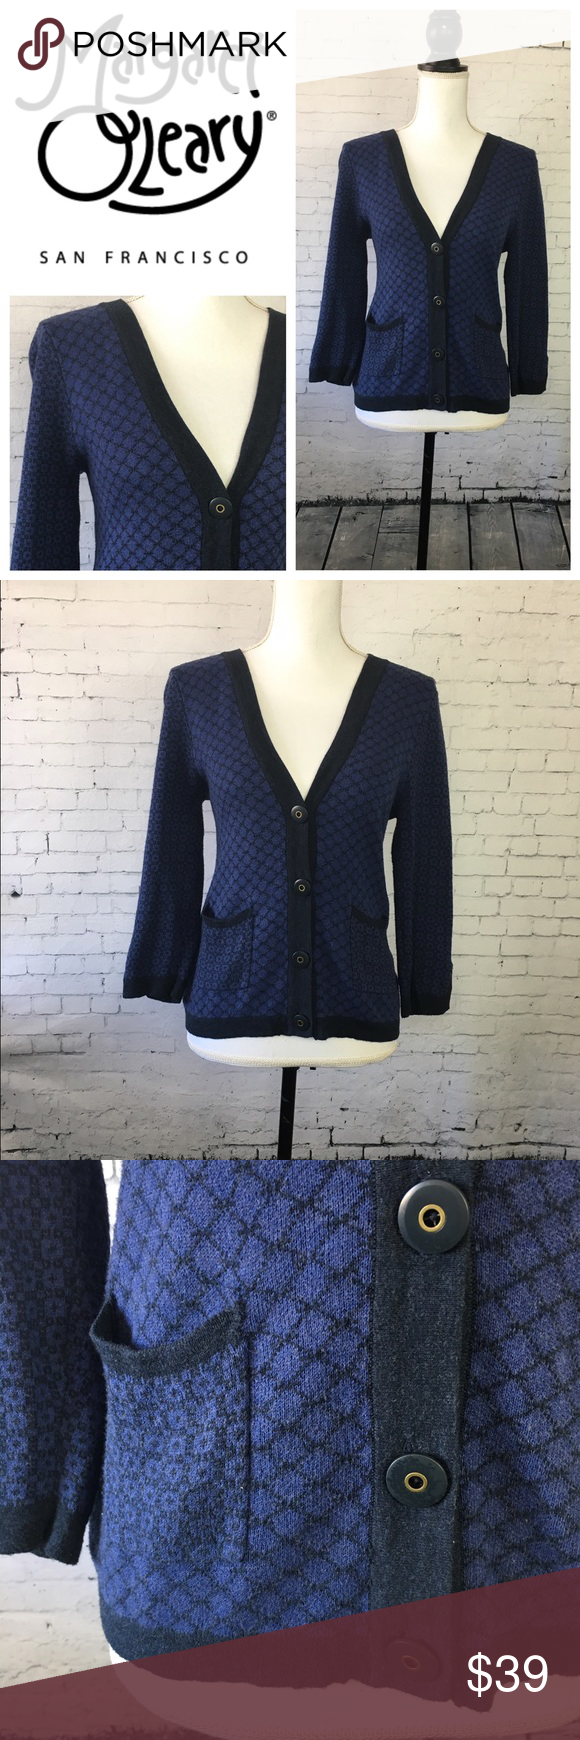 """Margaret O'Leary Preppy Cardigan Cozy cardigan in 100% cotton by high end designer label Margaret O'Leary. Great for spring layering and perfect over dresses, trousers or jeans. Size S. Approx 22"""" long and 18"""" across the chest when laying flat. Excellent condition. Margaret O'Leary Sweaters Cardigans"""